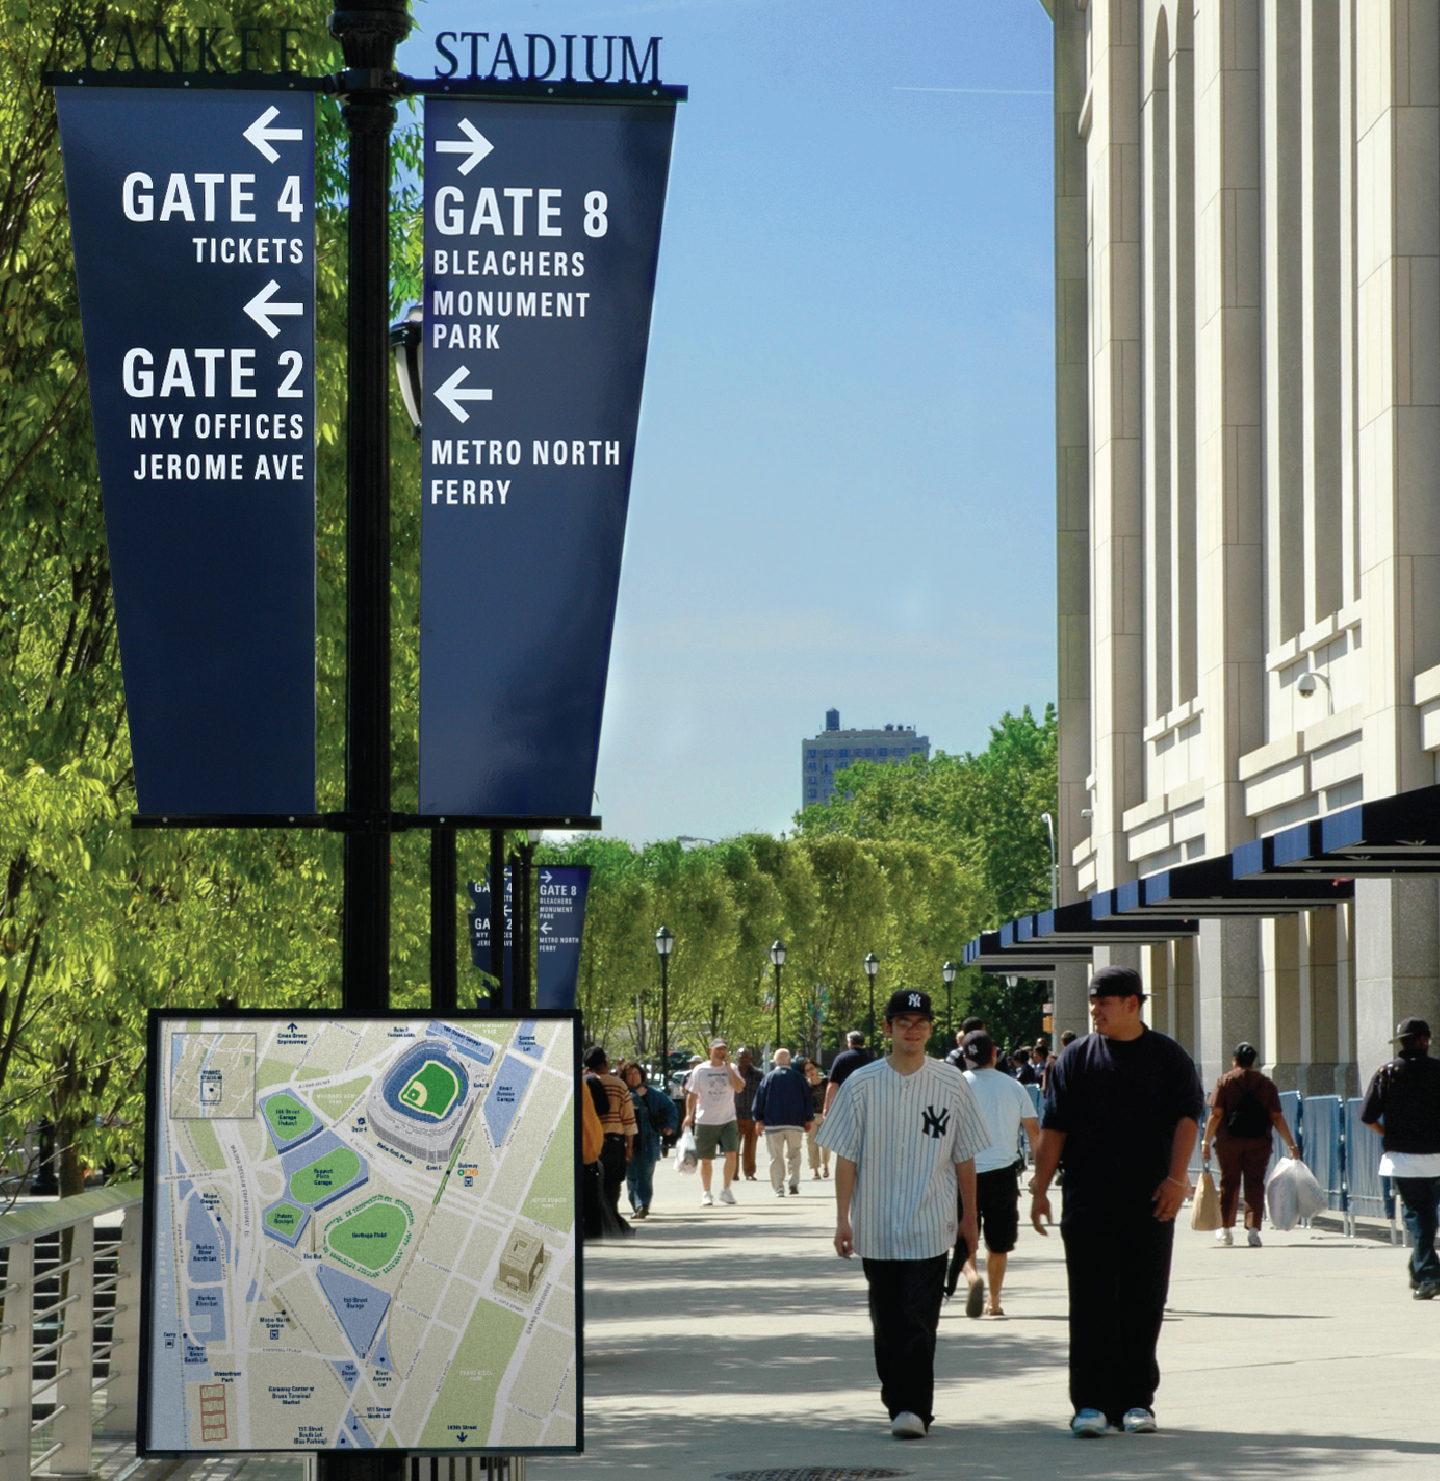 Project image 5 for Signs, New York Yankees